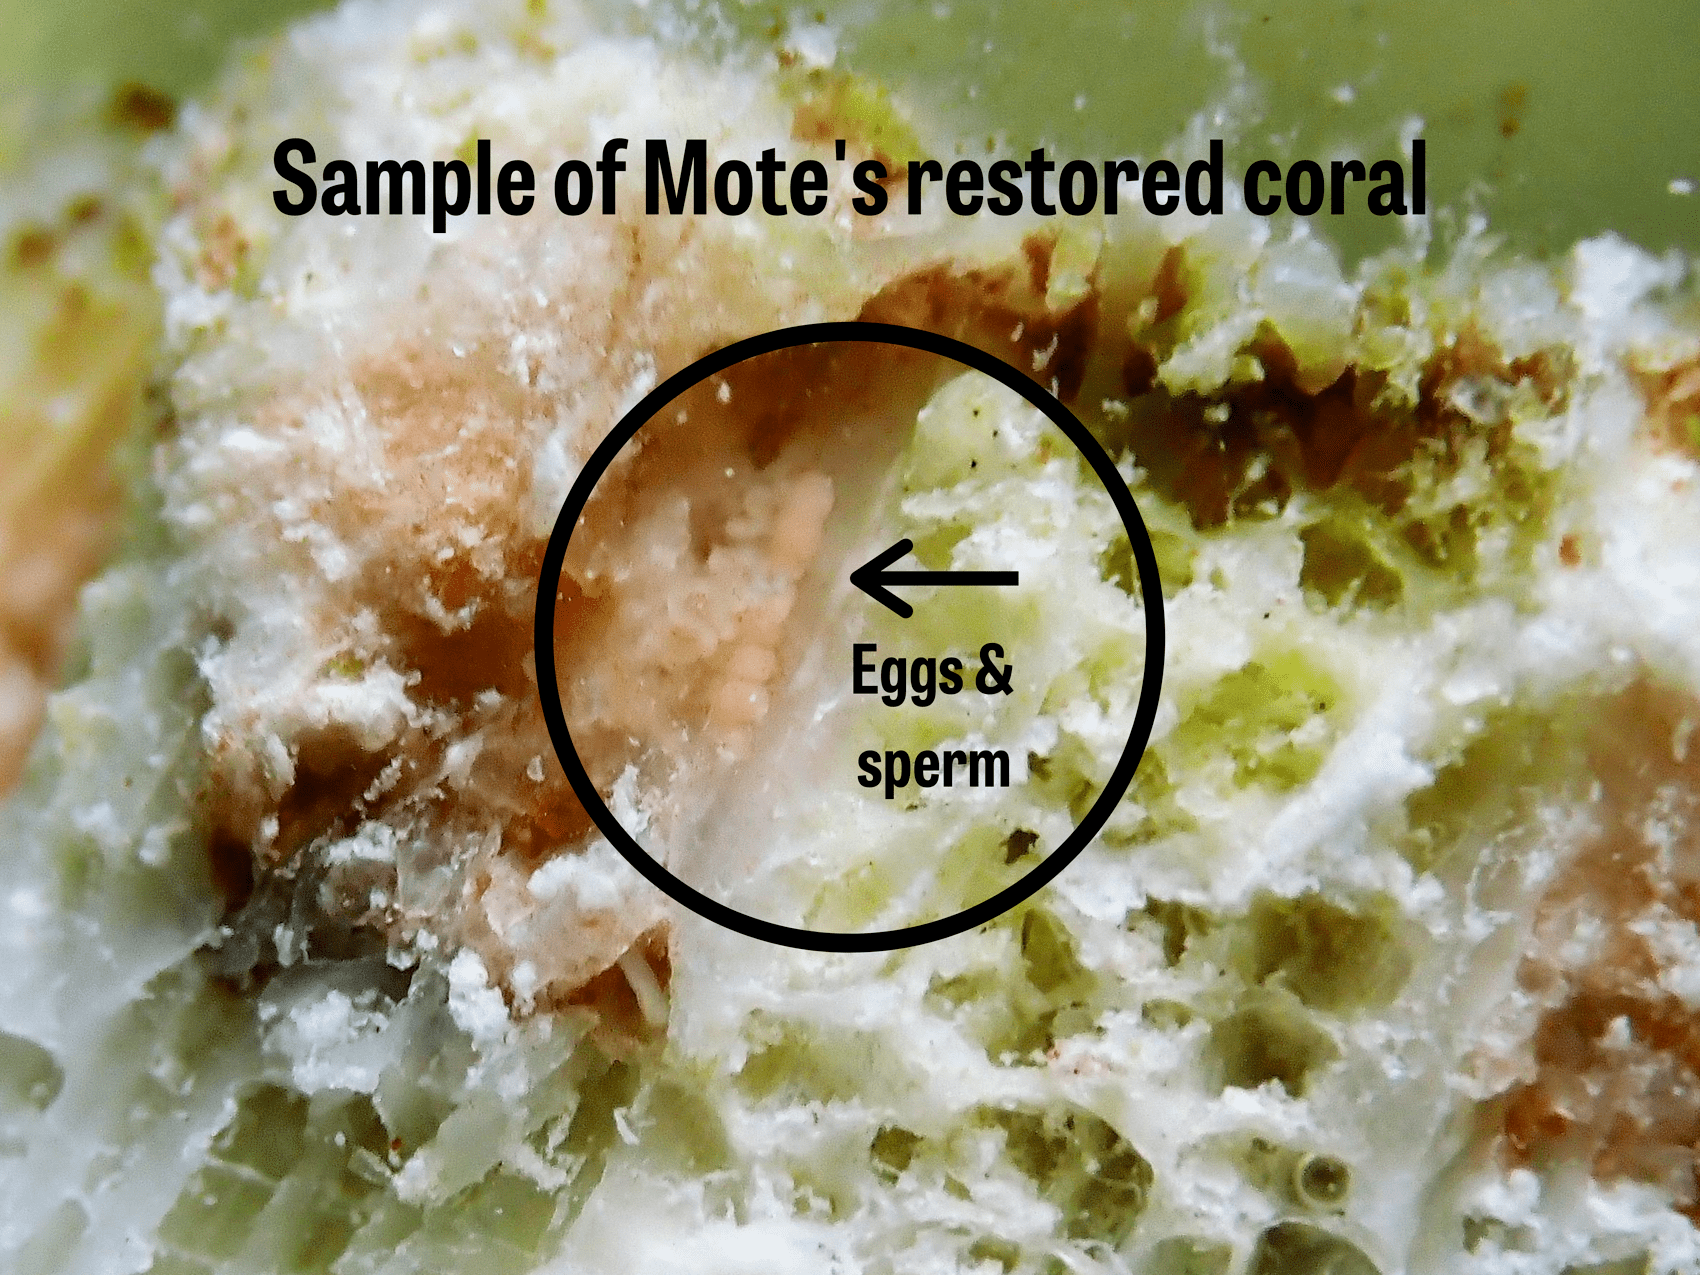 Closeup of restored coral with a circle noting where the egg and sperm are visible